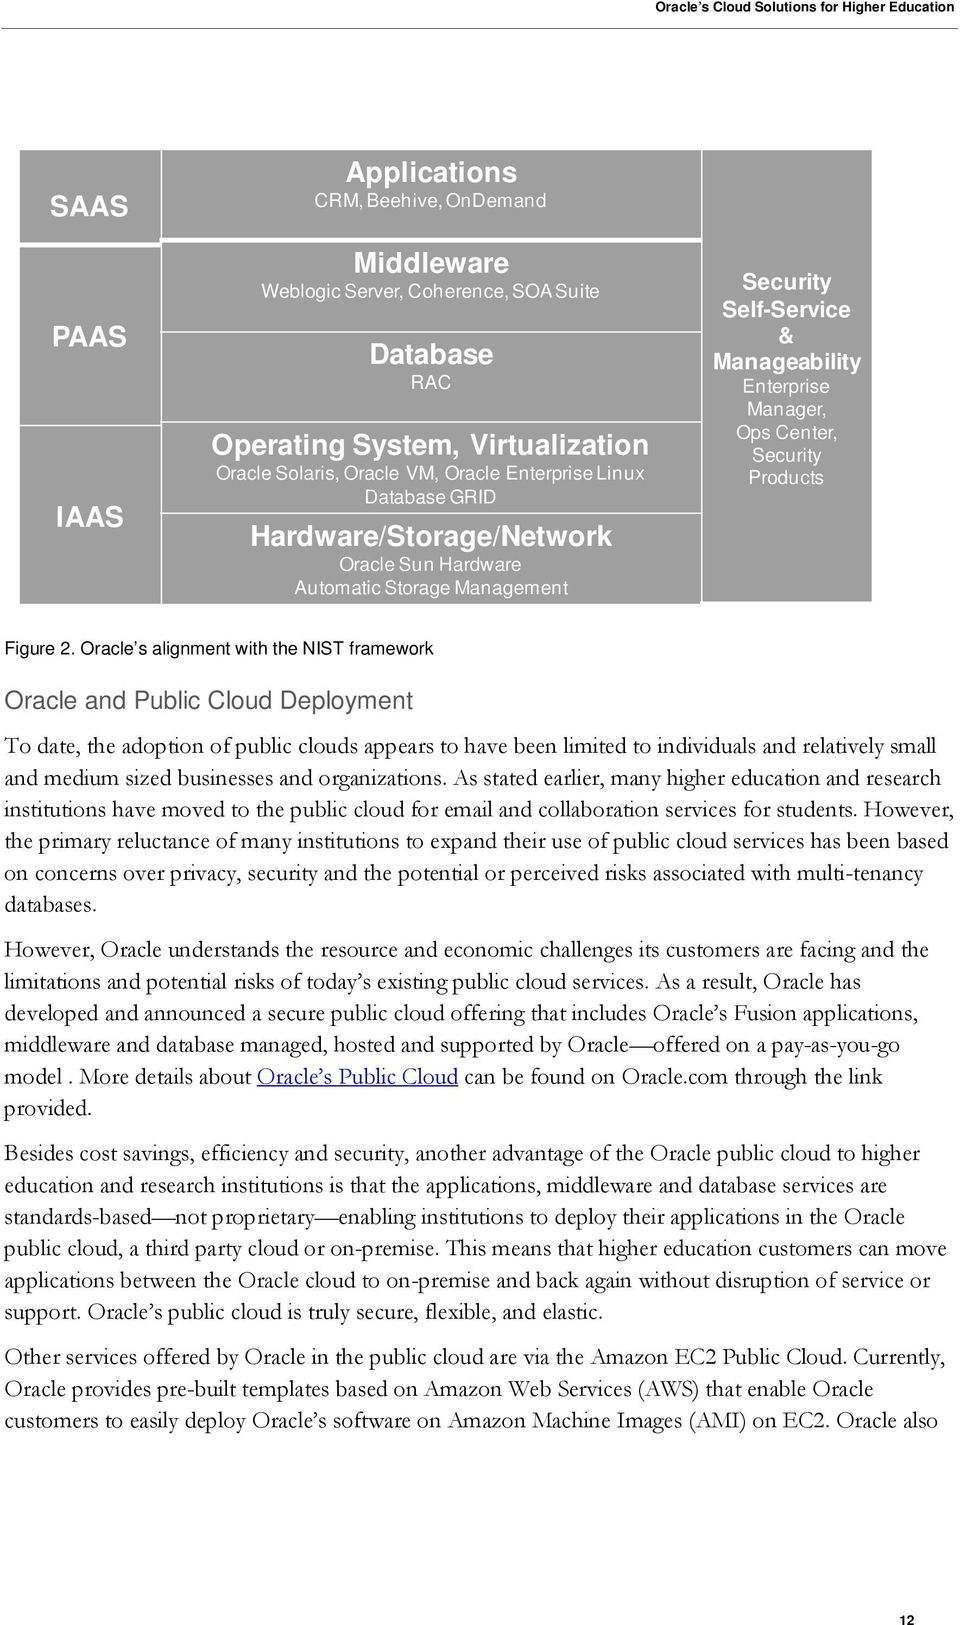 Oracle s alignment with the NIST framework Oracle and Public Cloud Deployment To date, the adoption of public clouds appears to have been limited to individuals and relatively small and medium sized